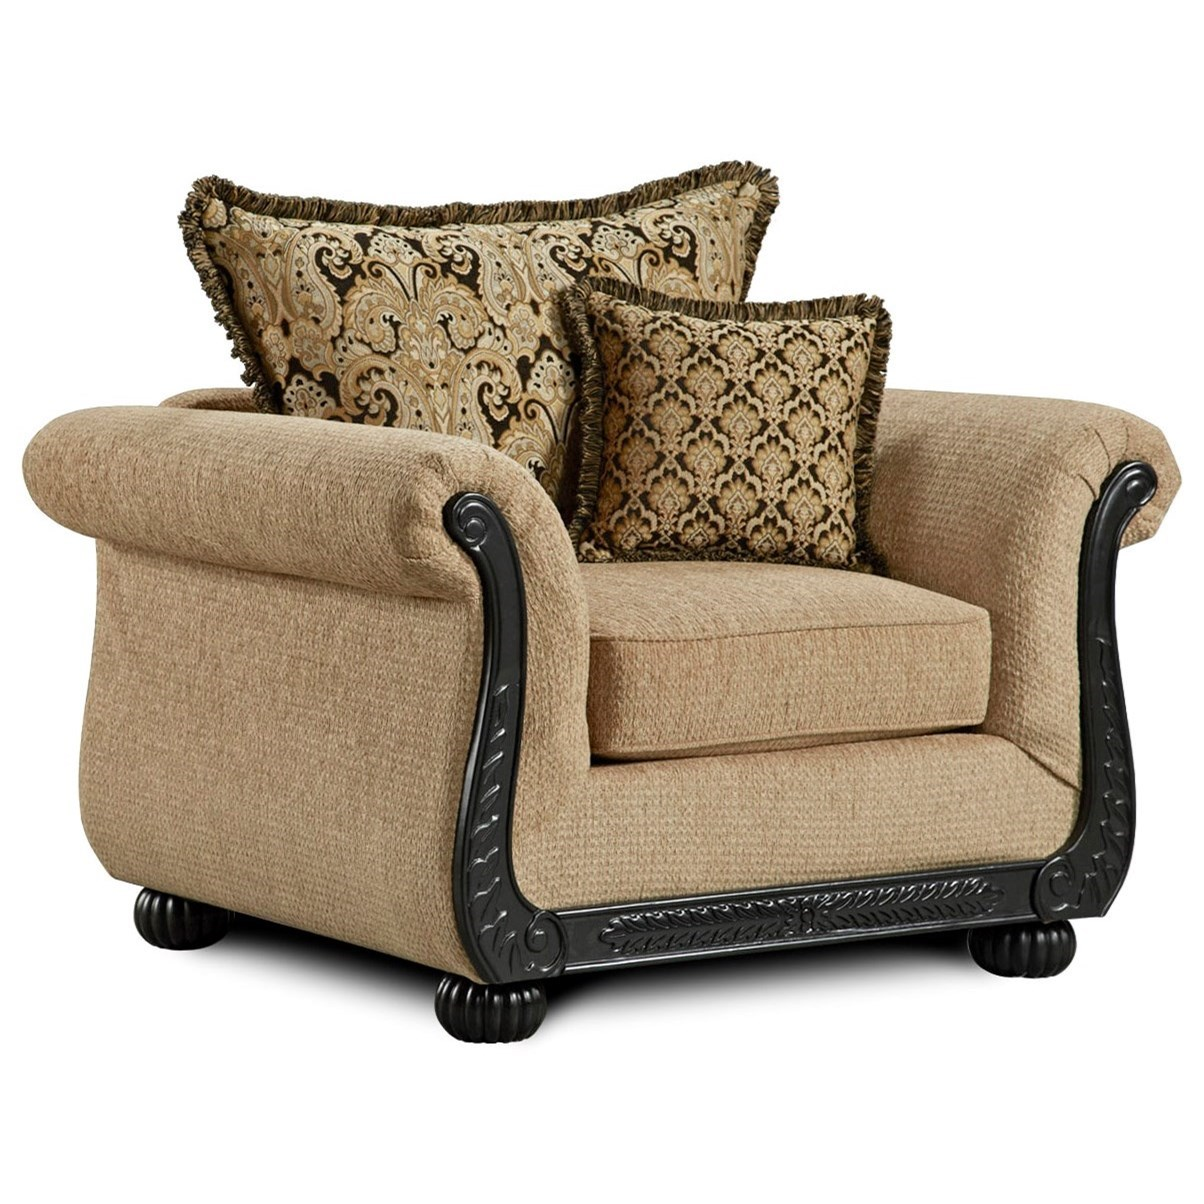 6000 Upholstered Chair by Washington Furniture at Lynn's Furniture & Mattress